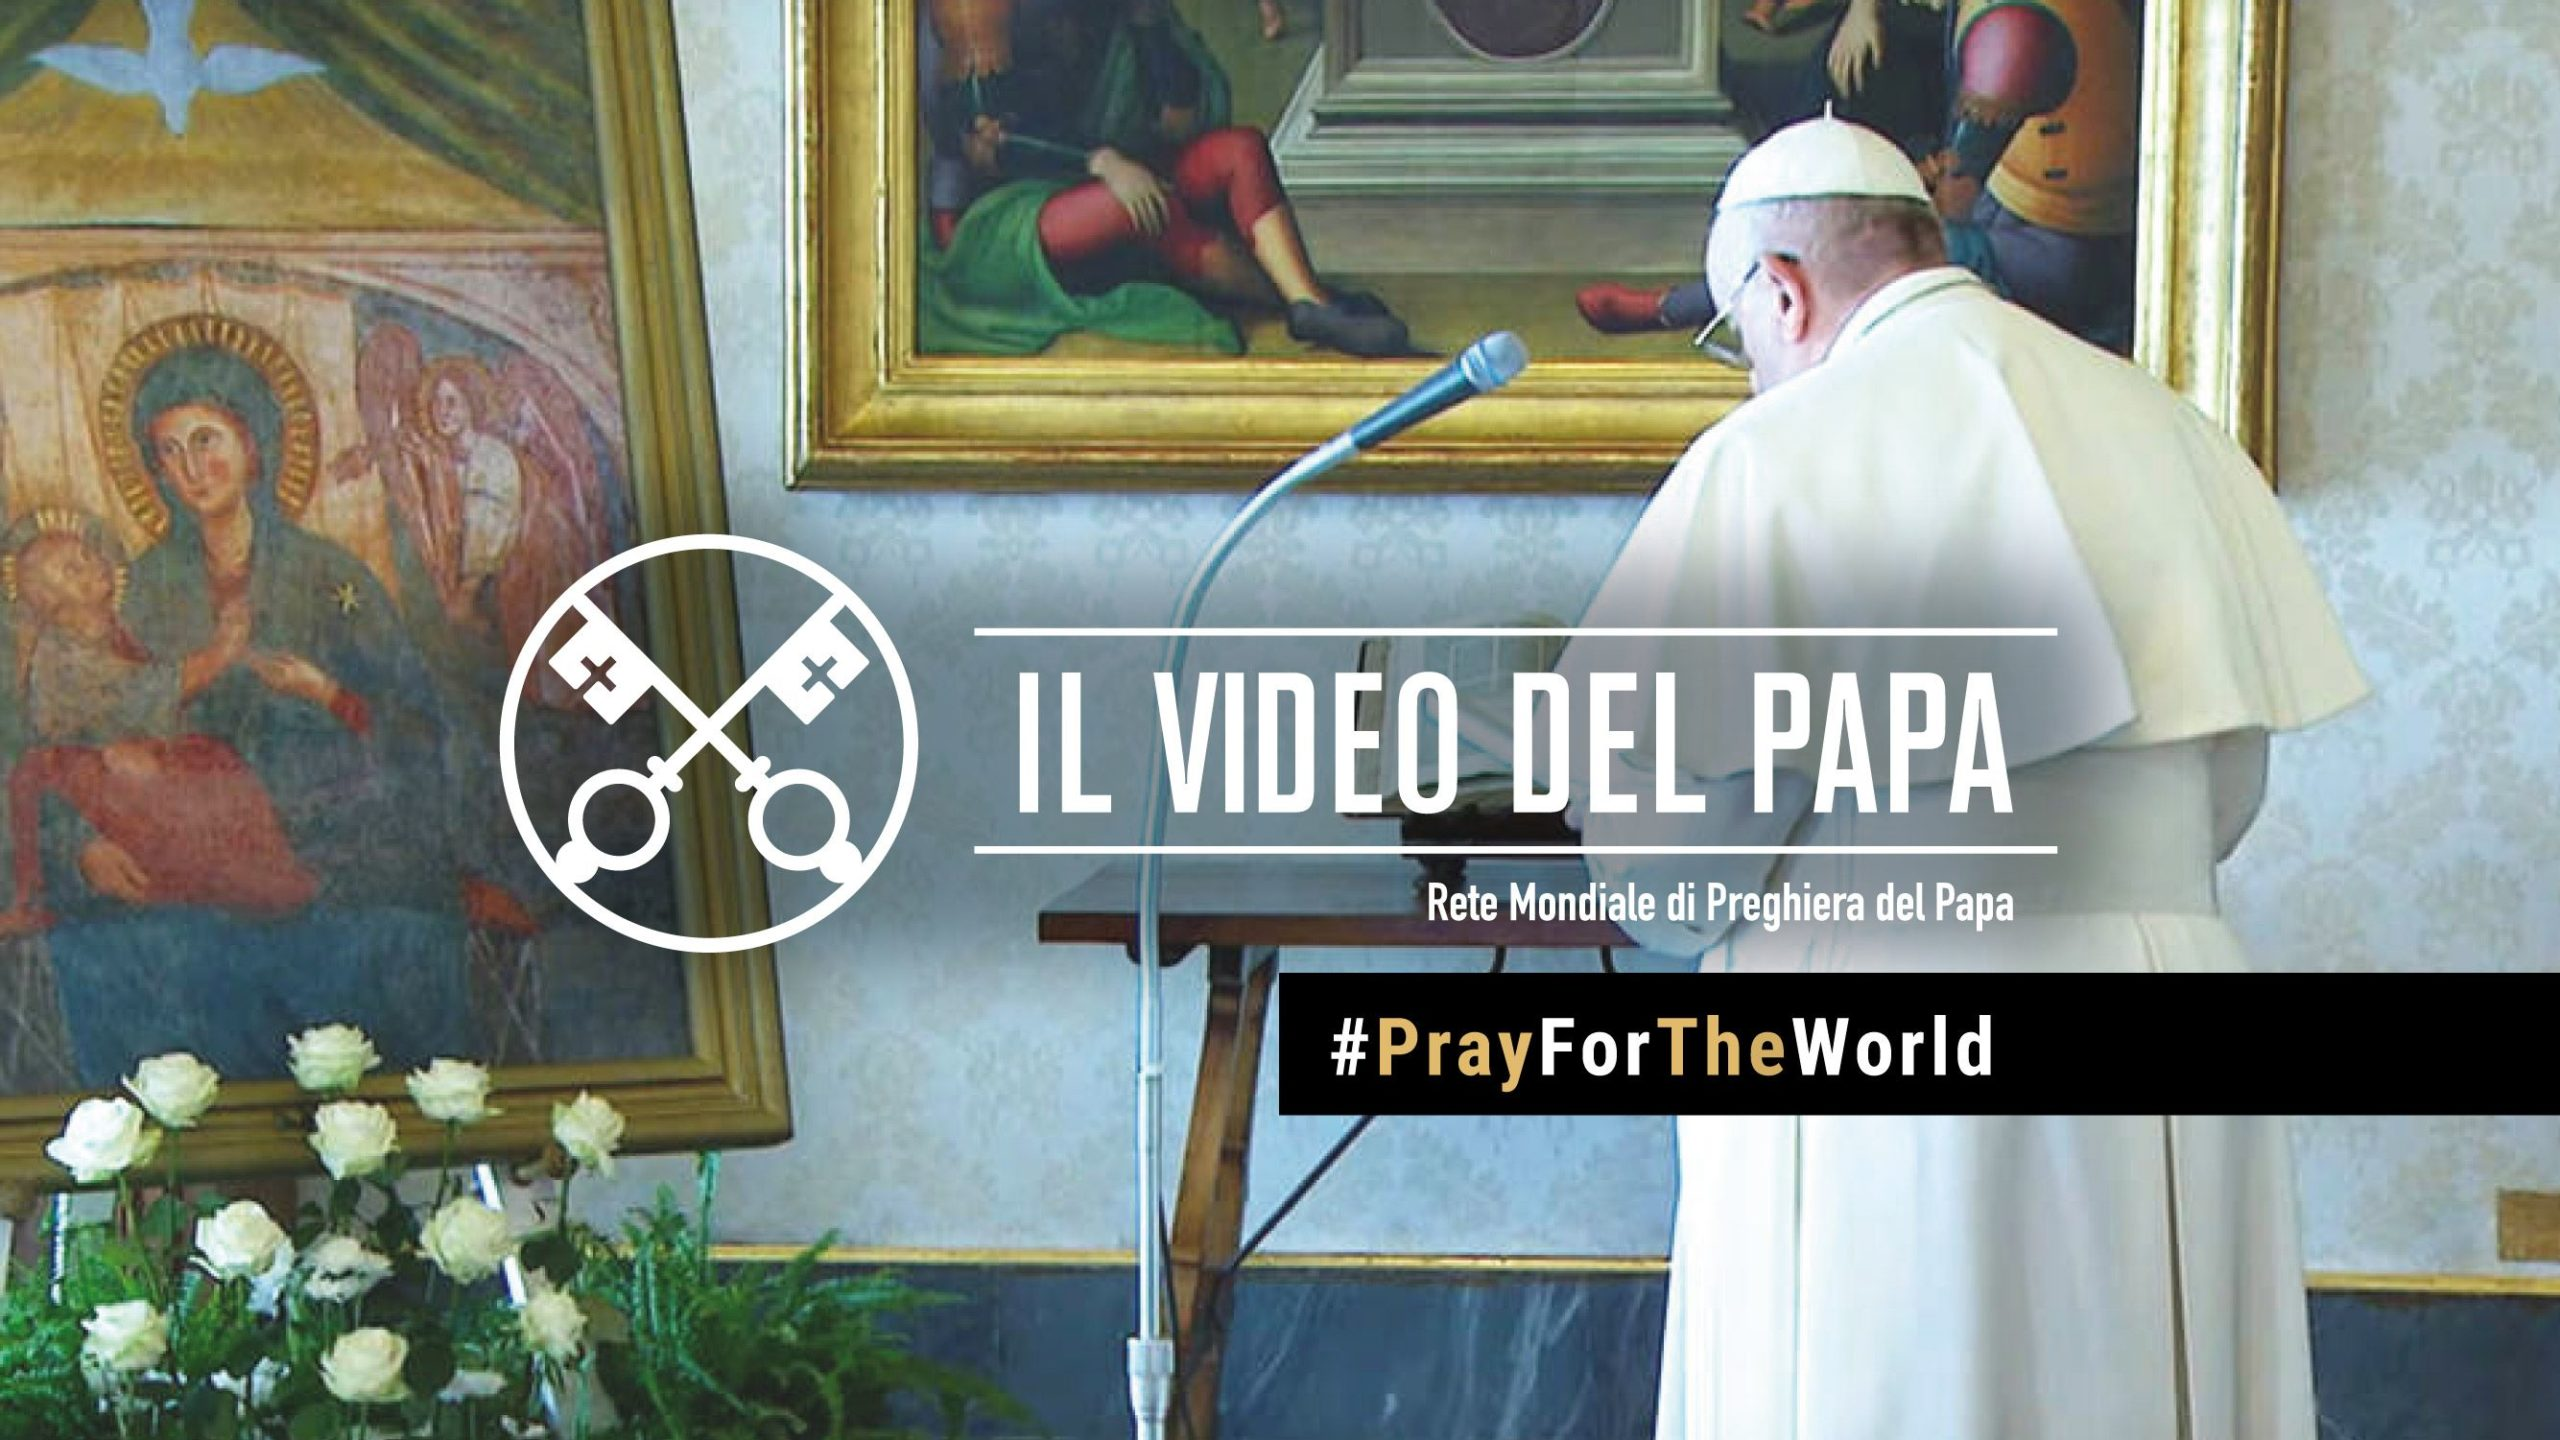 Official-Image-TPV-PFTW-2020-IT-Il-Video-del-Papa-PrayForTheWorld-scaled